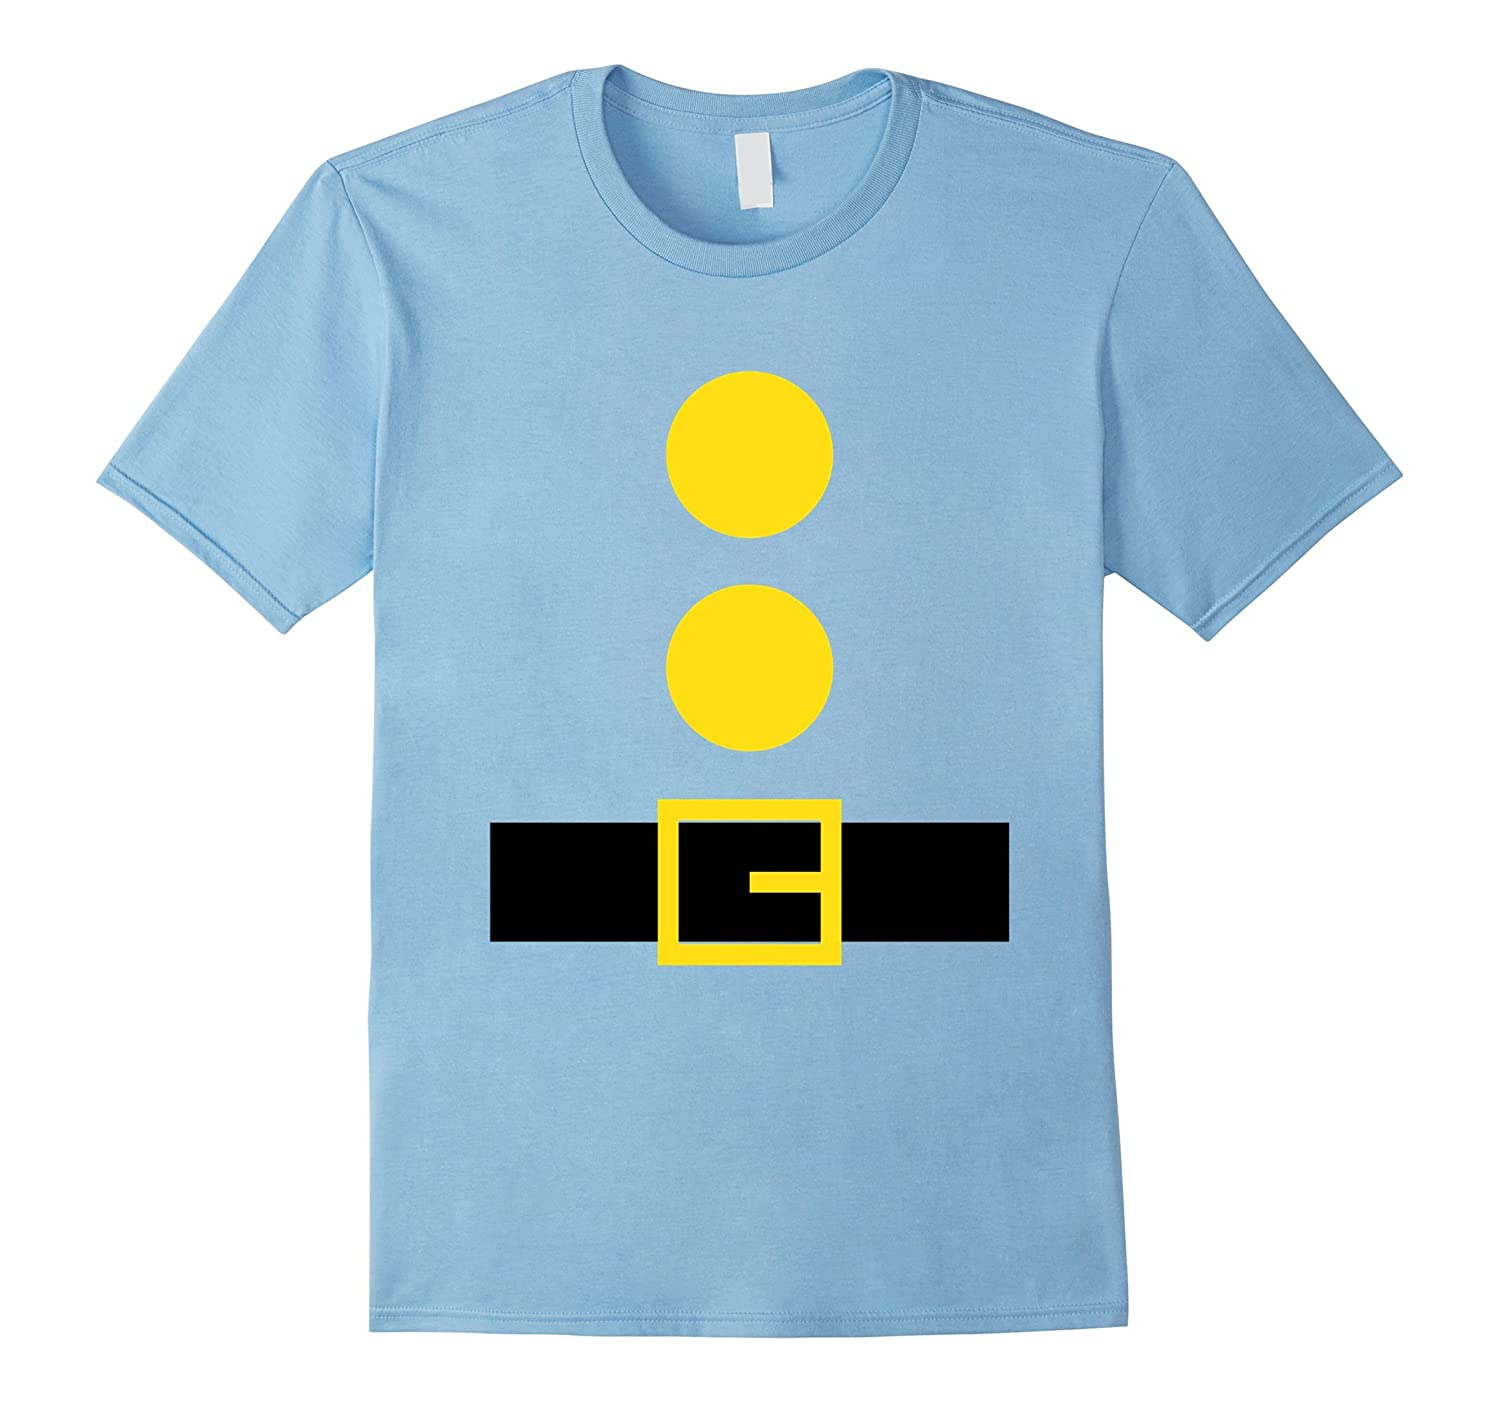 'Dwarf Outfit' Last Minute Halloween Costume Party Shirt-FL